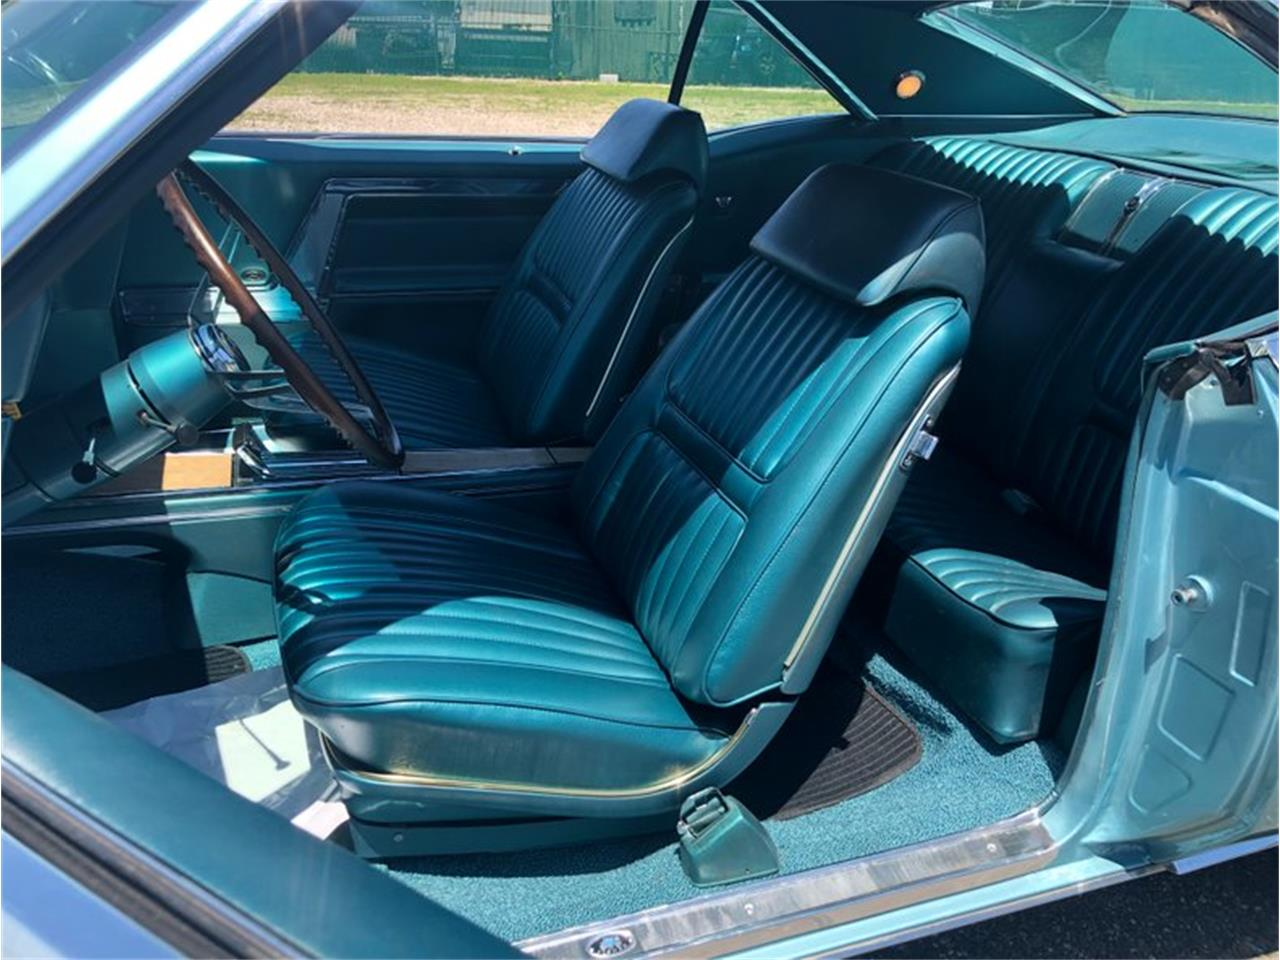 1967 Buick Riviera for sale in West Babylon, NY – photo 57